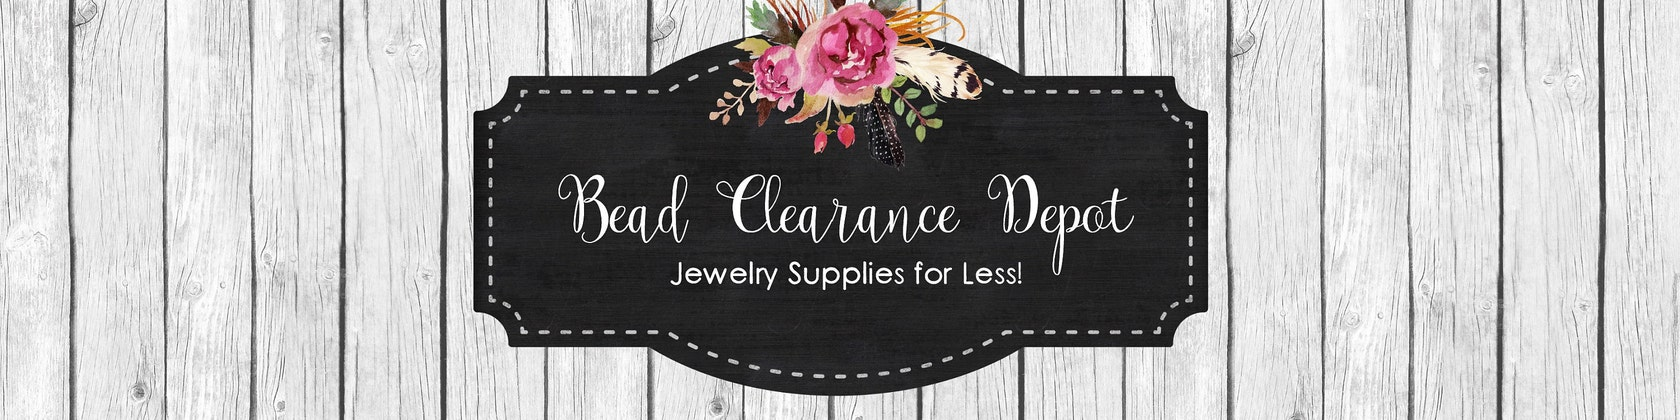 69b72cb9d0fe66 Jewelry Supplies for Less by BeadClearanceDepot on Etsy